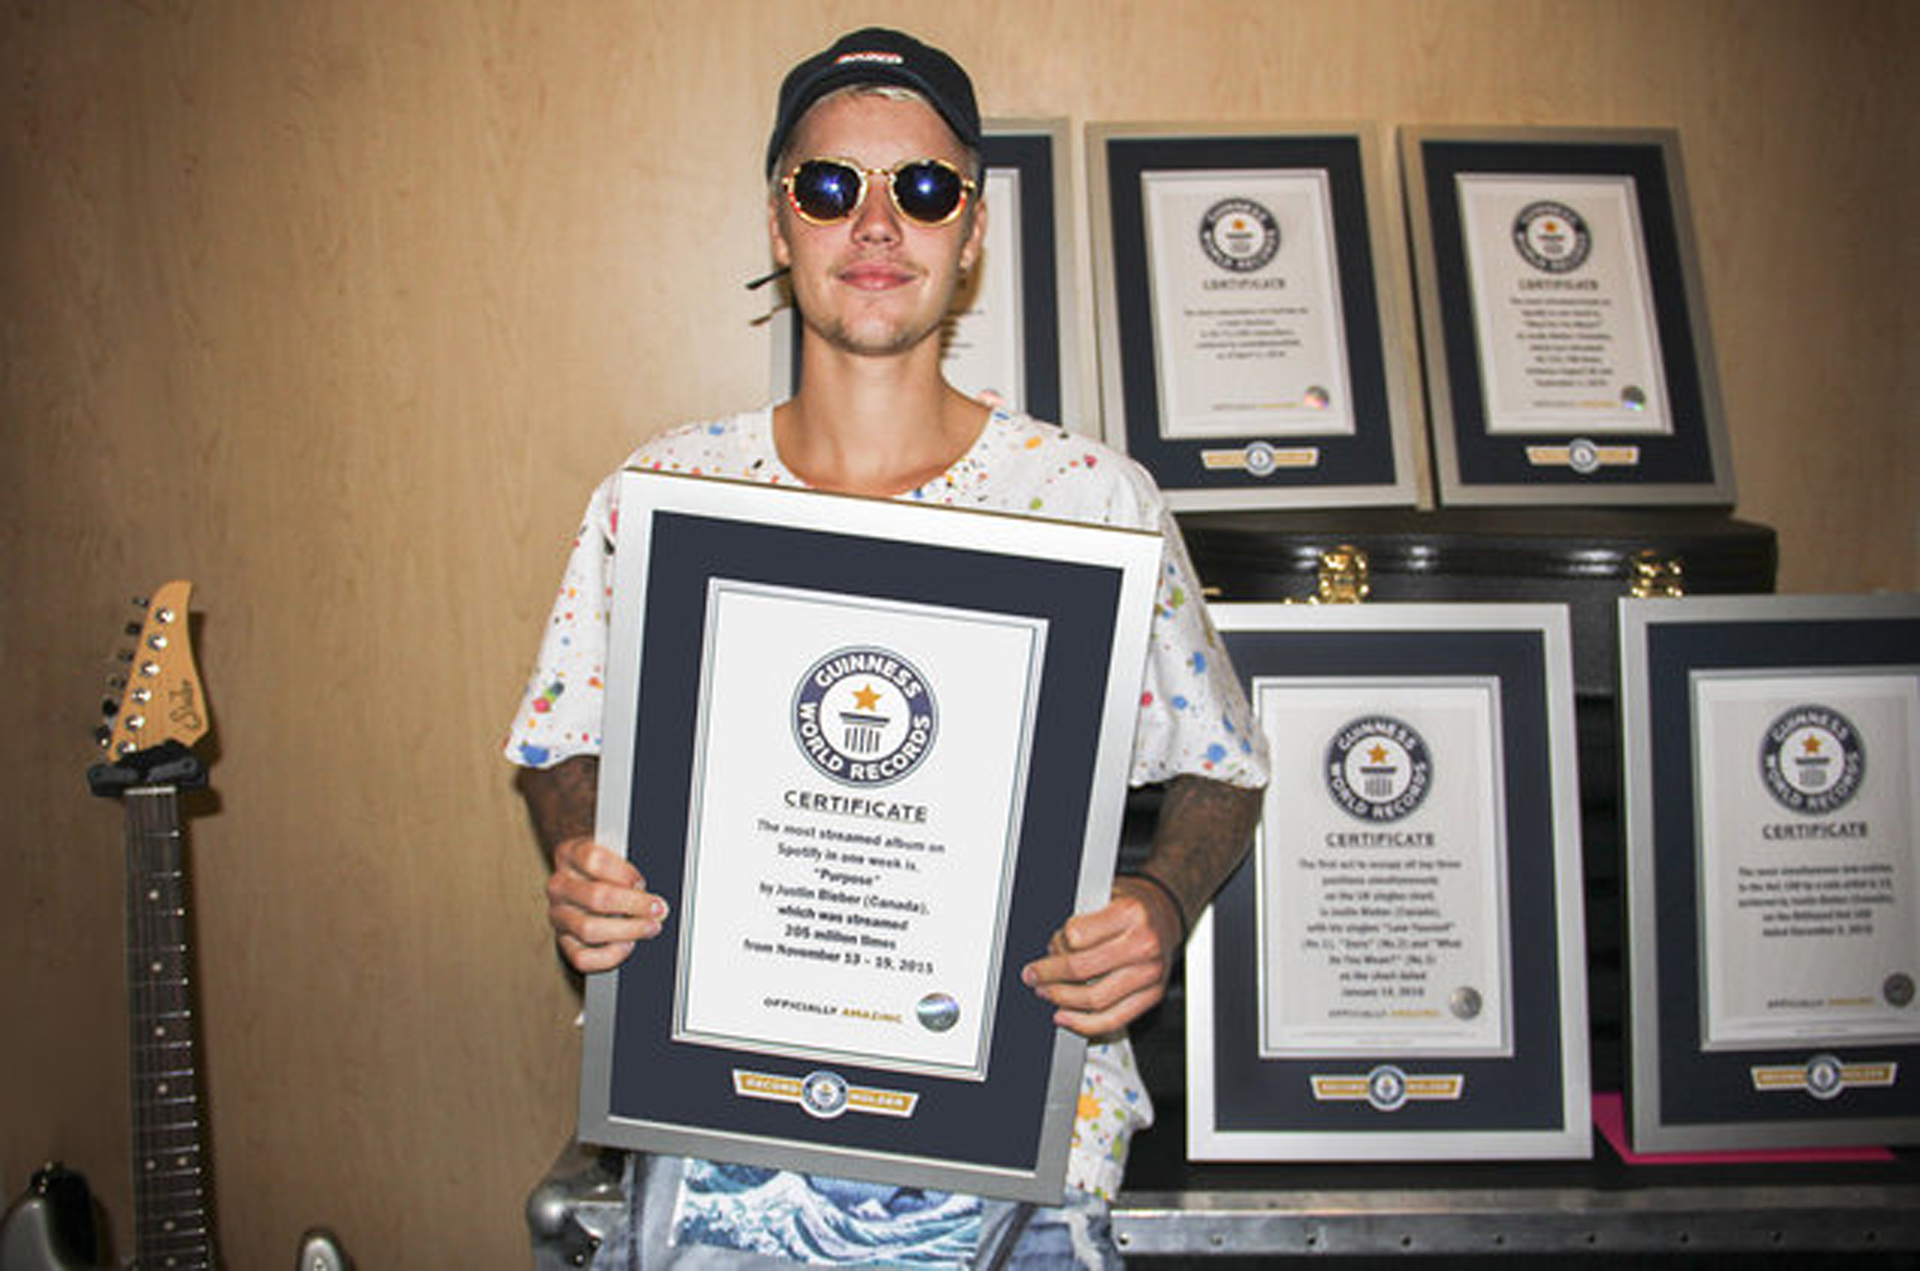 Libro Record Guinness 2017 Justin Bieber Se Anota Ocho Guinness World Records Para El